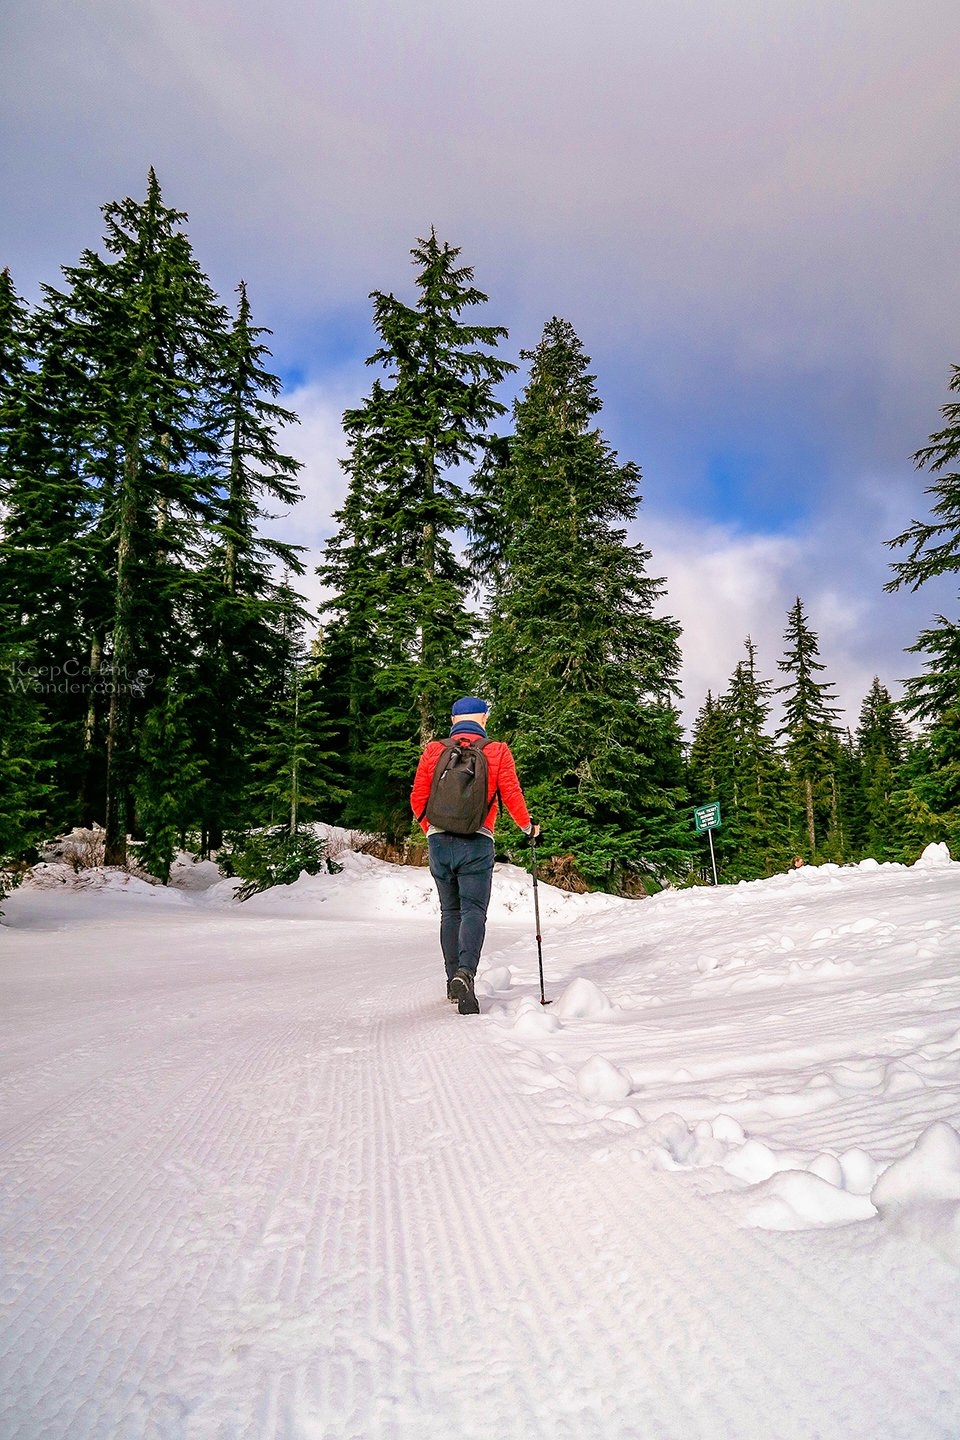 The Hiking Trail to Hollyburn Lodge in Winter (West Vancouver, British Columbia). Canada Parks Travel Blog